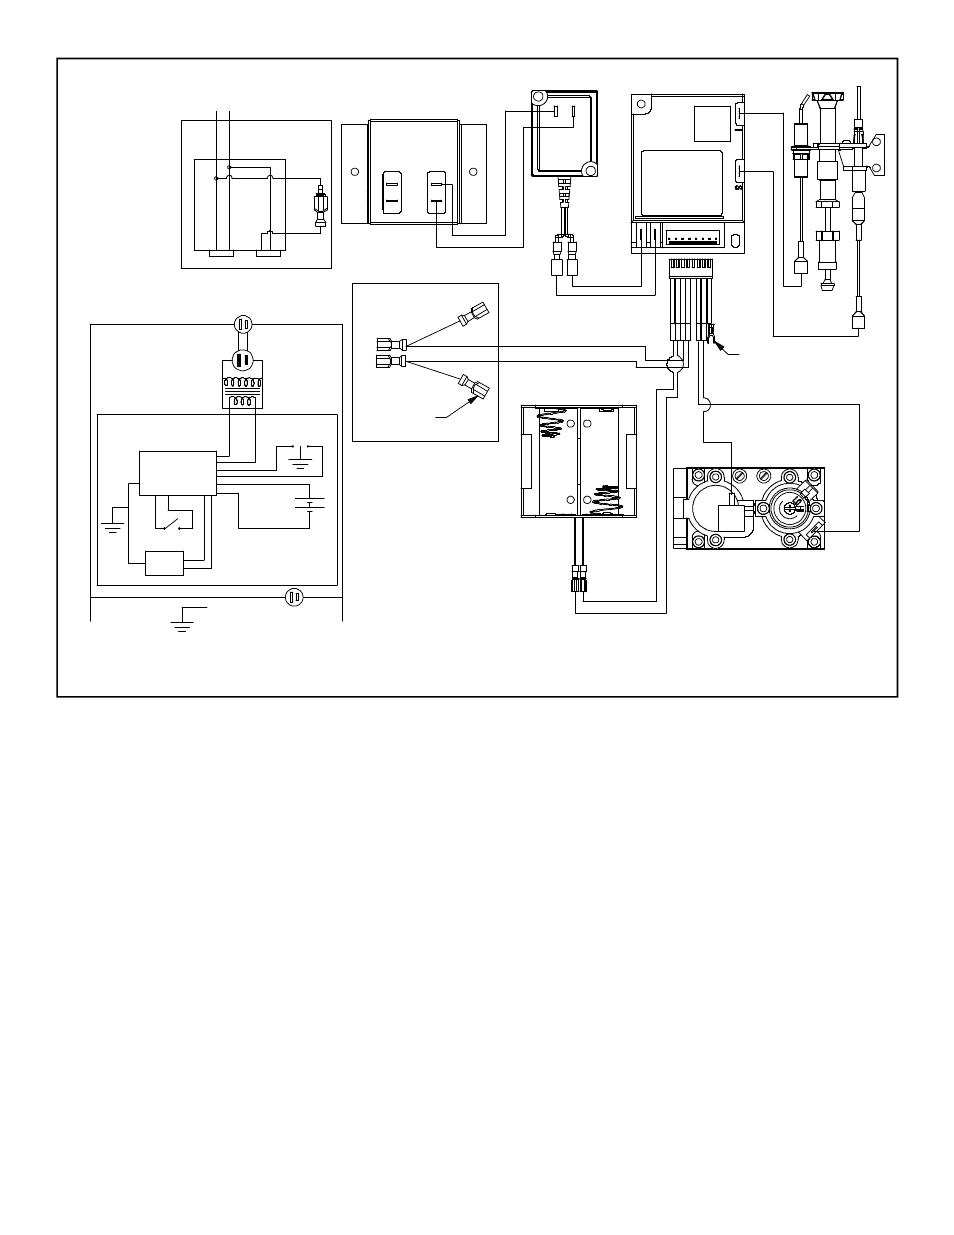 Junction Box Stove Wiring For Intermittent Pilot Ignition Ipi Hearth And Home Technologies Gas L Corner Trc User Manual Page 36 40